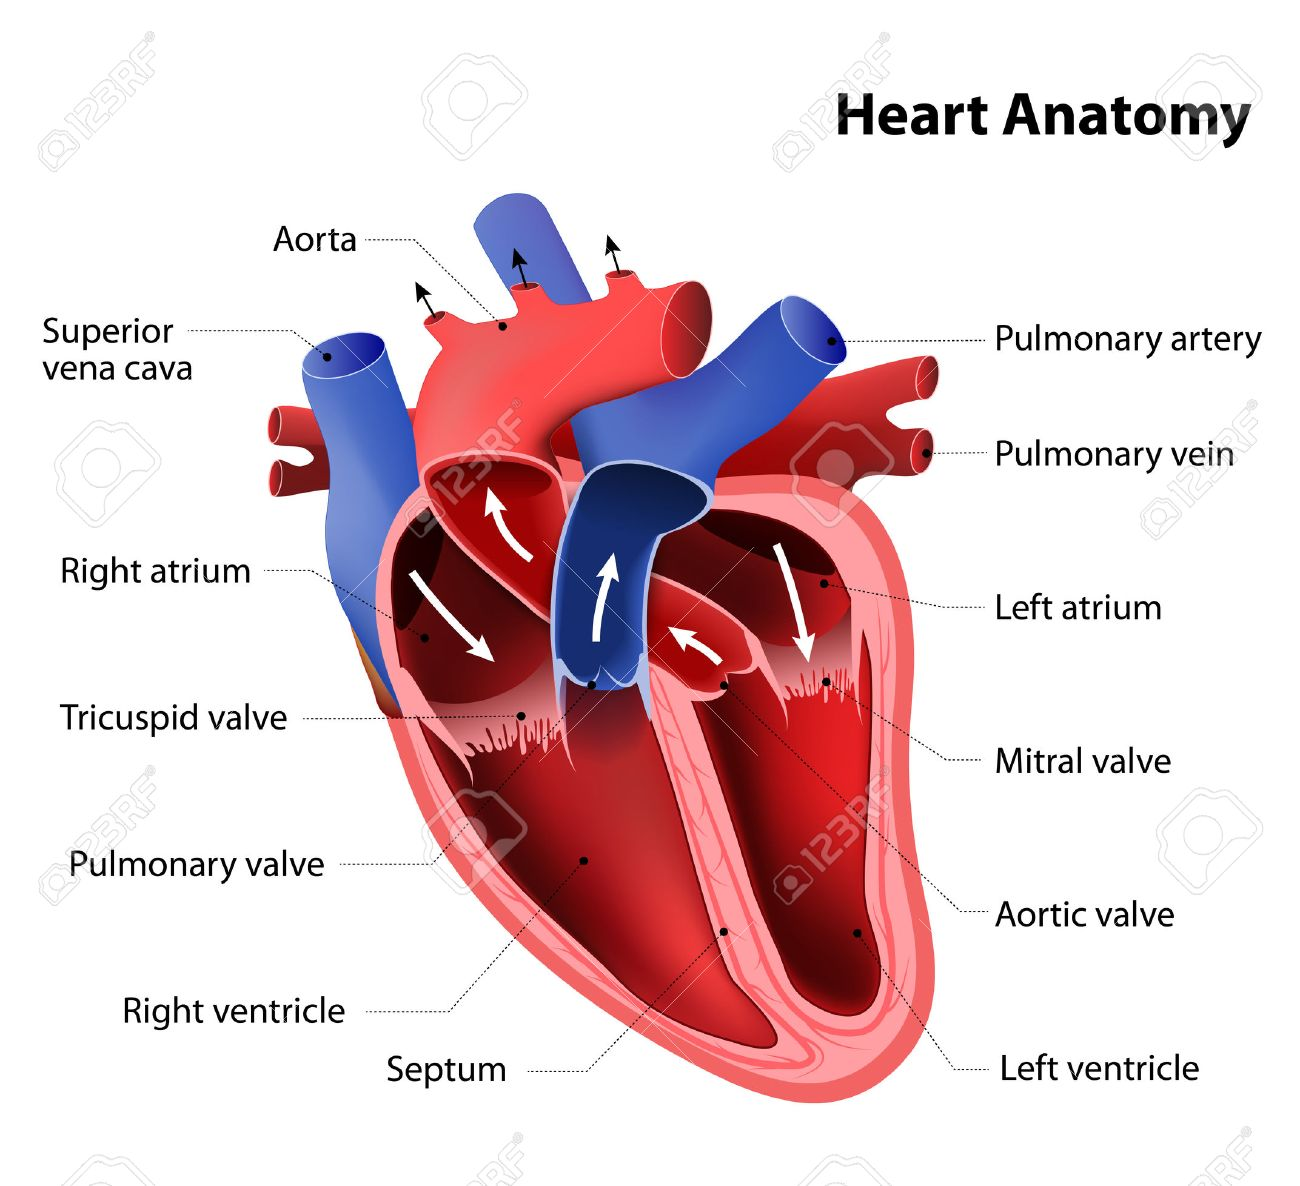 Heart anatomy part of the human heart royalty free cliparts heart anatomy part of the human heart stock vector 50902554 ccuart Images